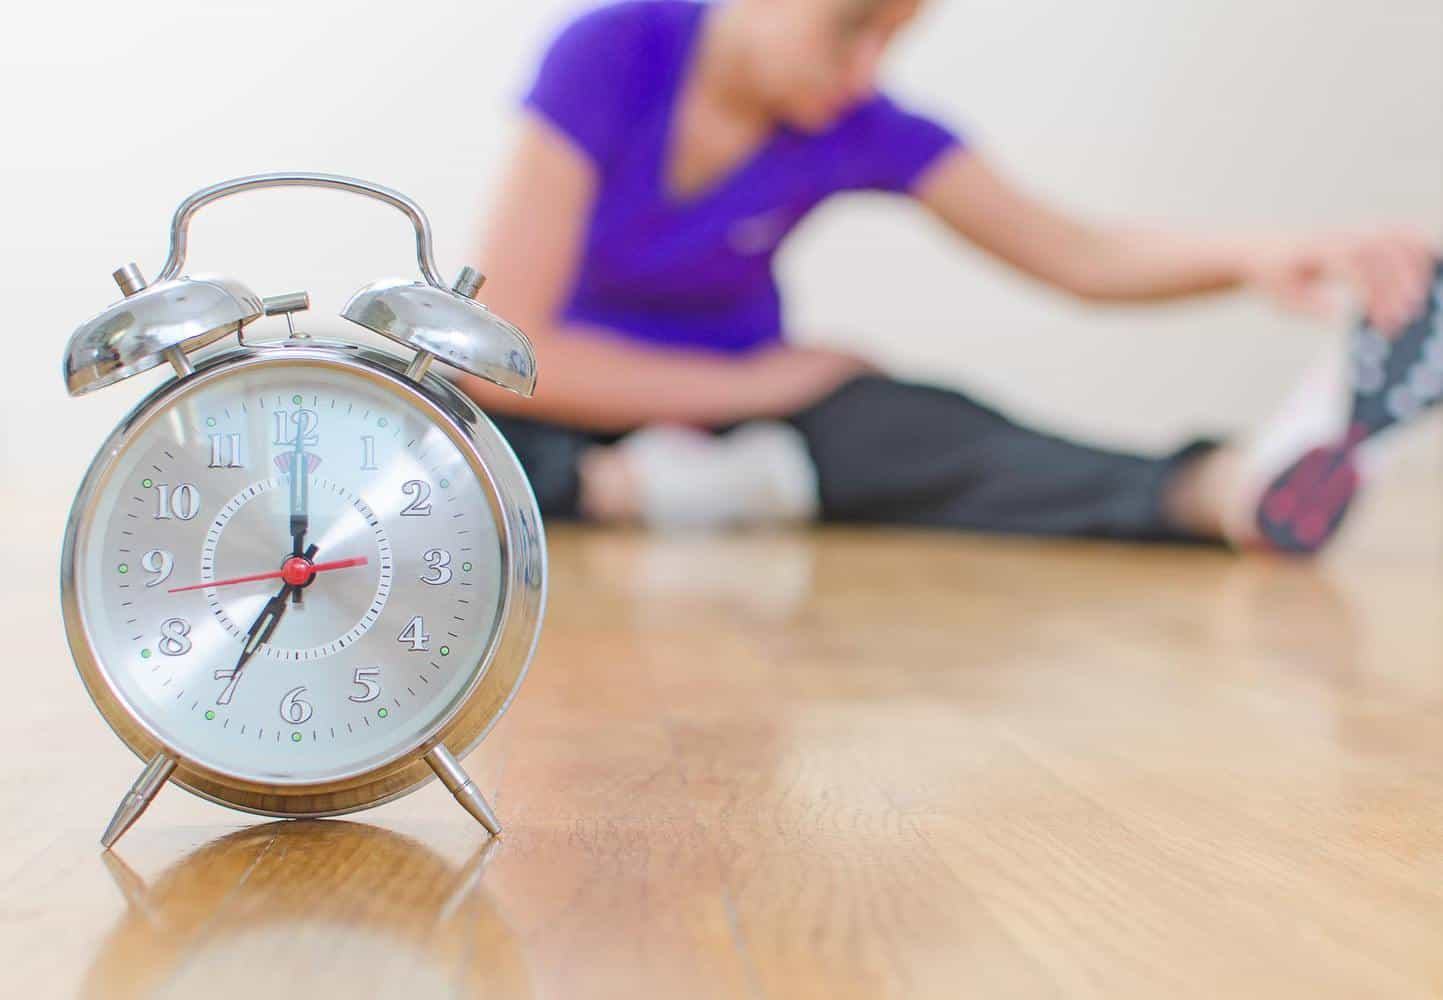 An alarm clock with a woman stretching in the background.